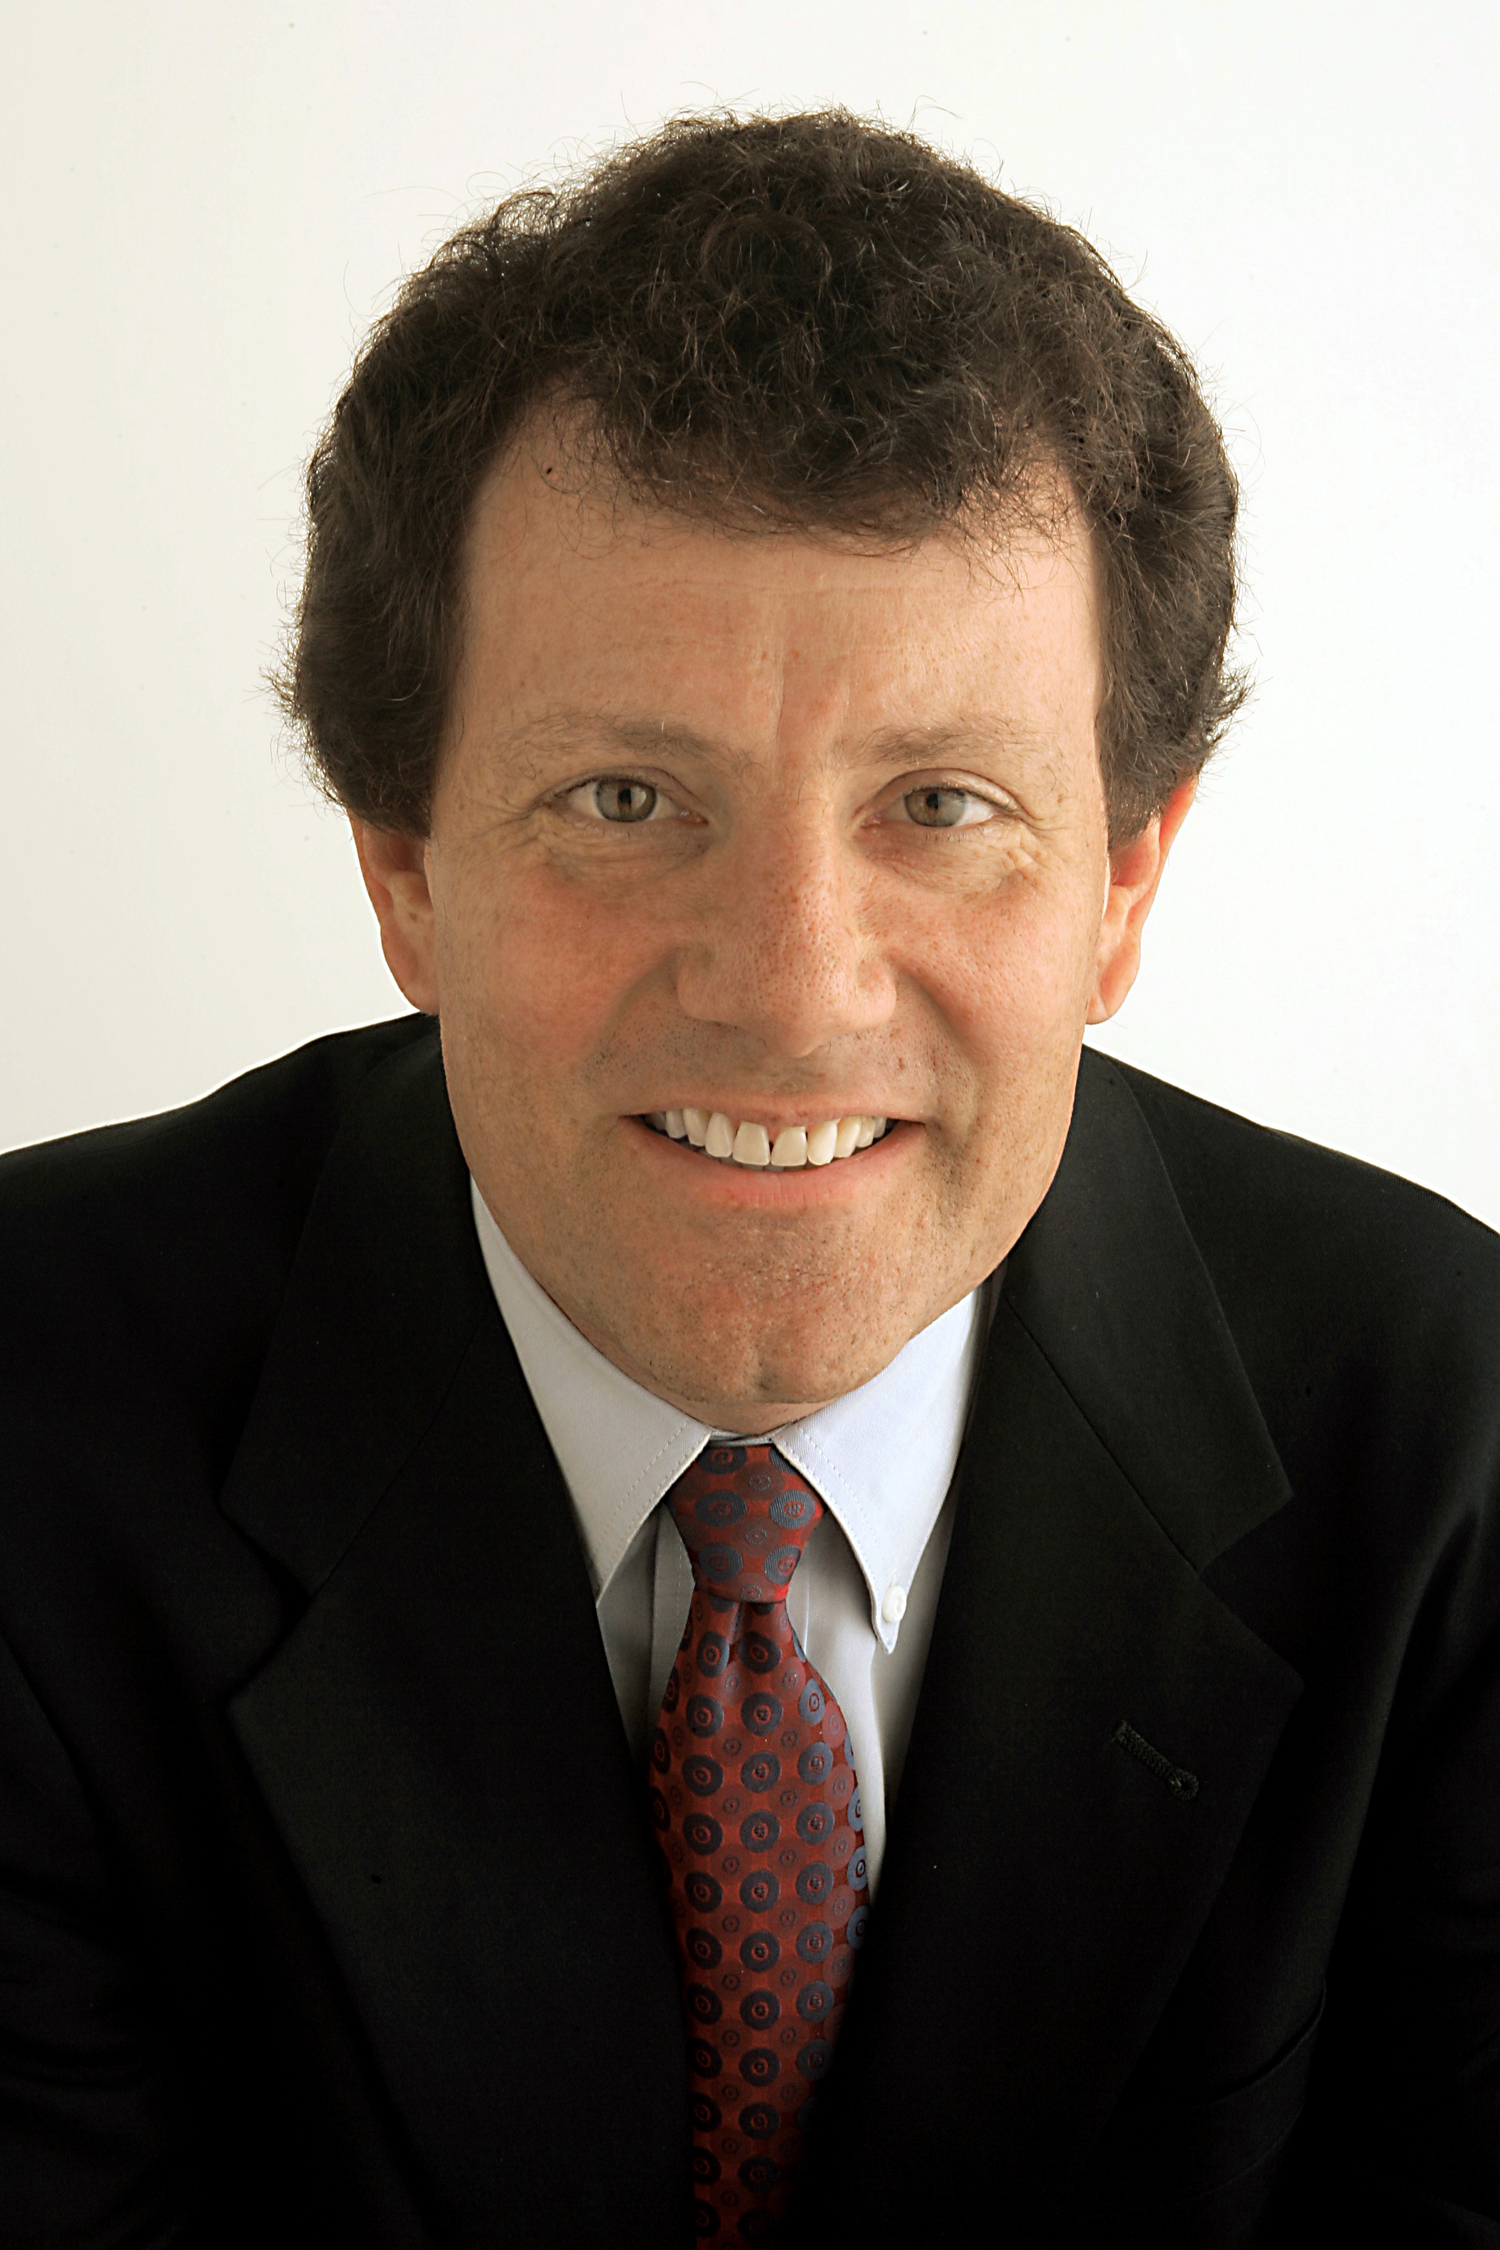 Nicholas Kristof, New York Times journalist